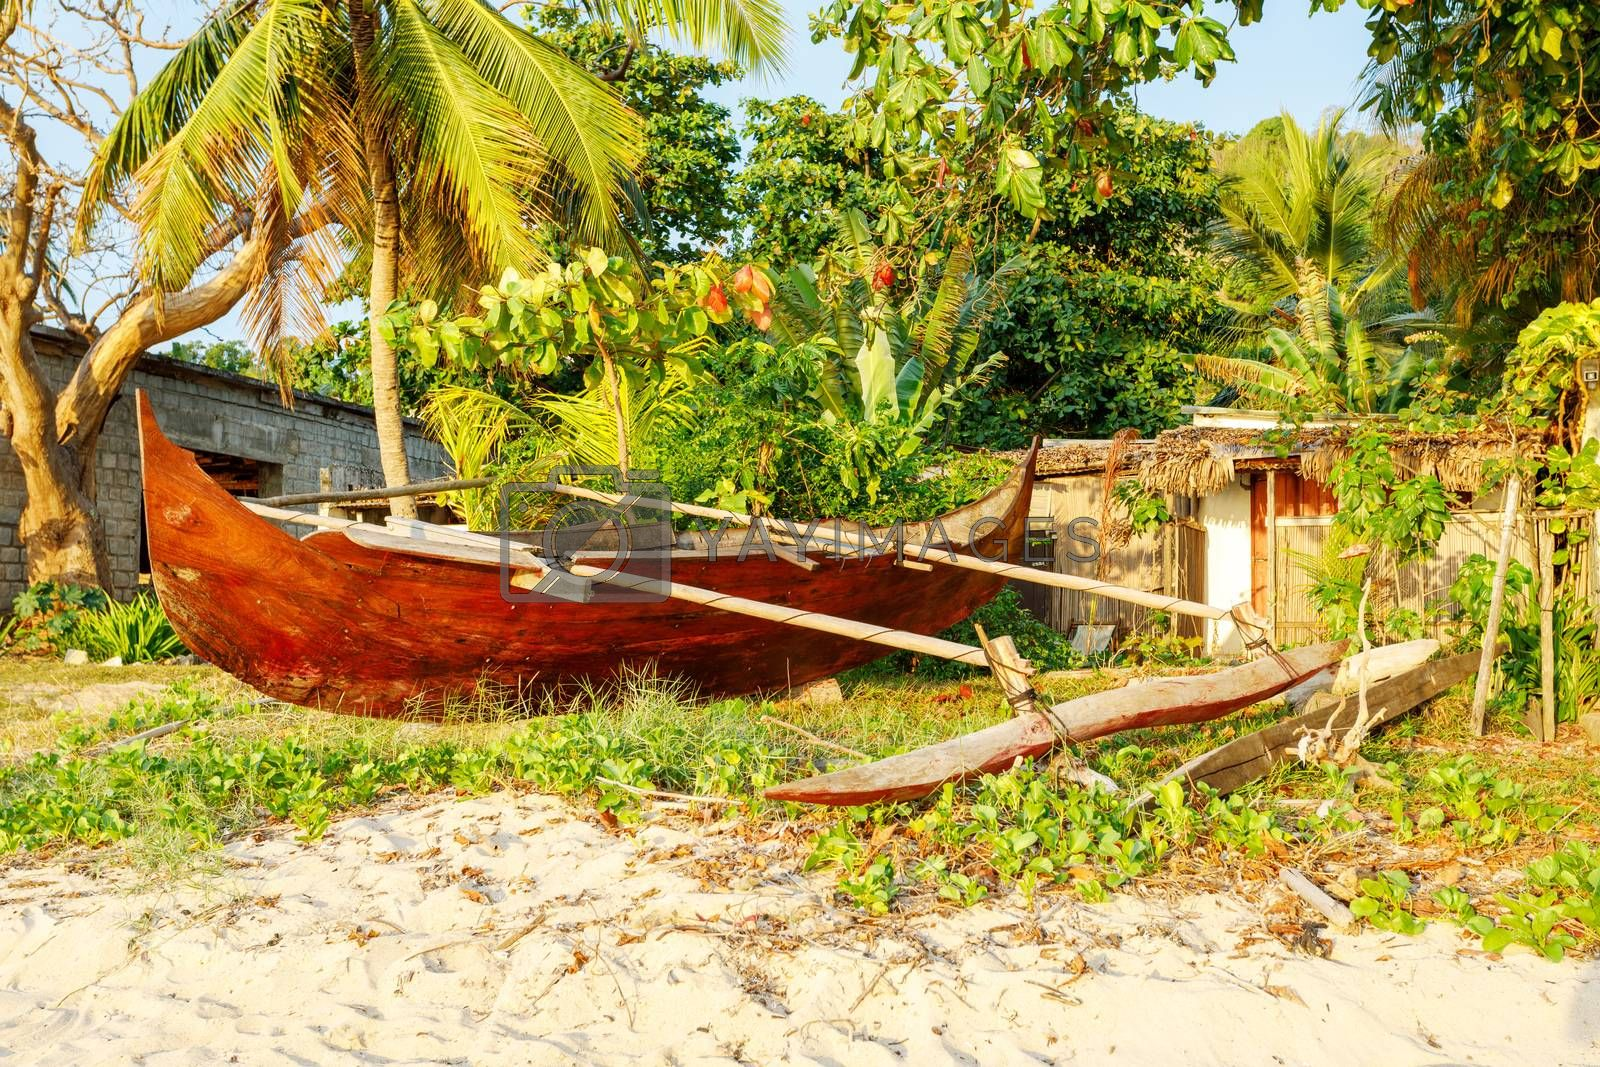 Traditional aboriginal Malagasy wooden hand made fisherman dugout catamaran boat the beach in Nosy Be, Indian ocean, Madagascar